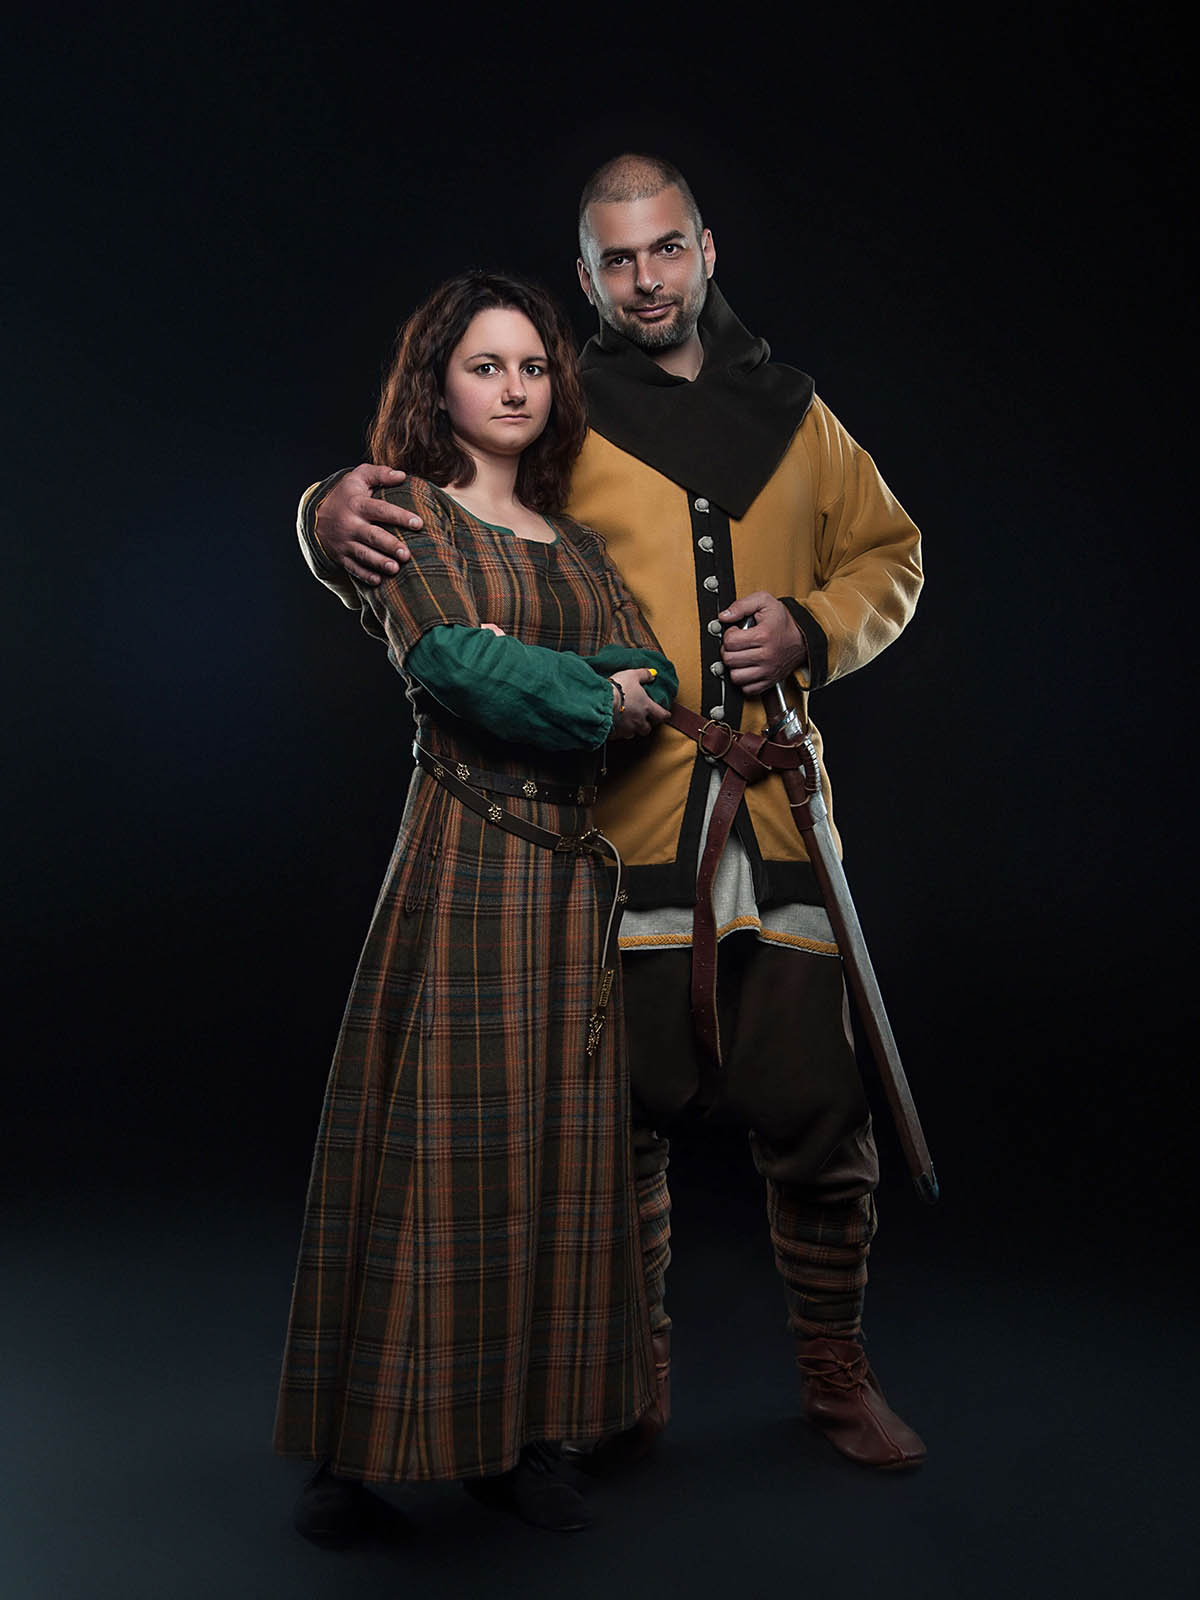 https://steel-mastery.com/image/catalog/products/CLW-35/5Middle_ages_women's_clothing.jpg